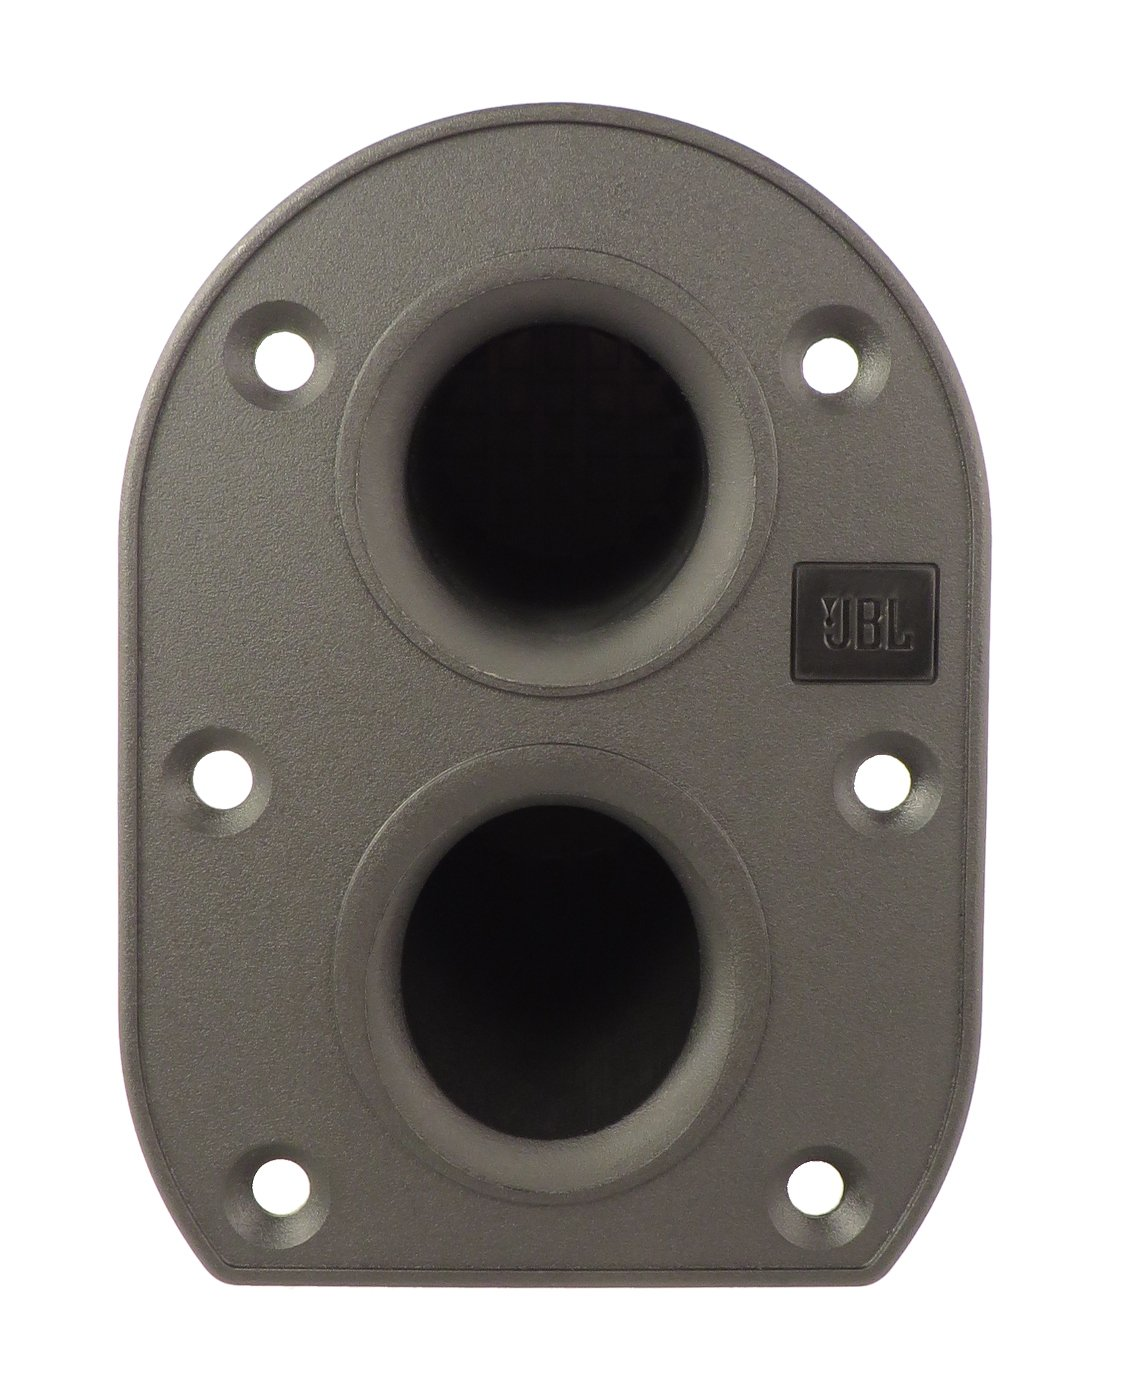 Dual Pole Cup for VRX932 and VRX928